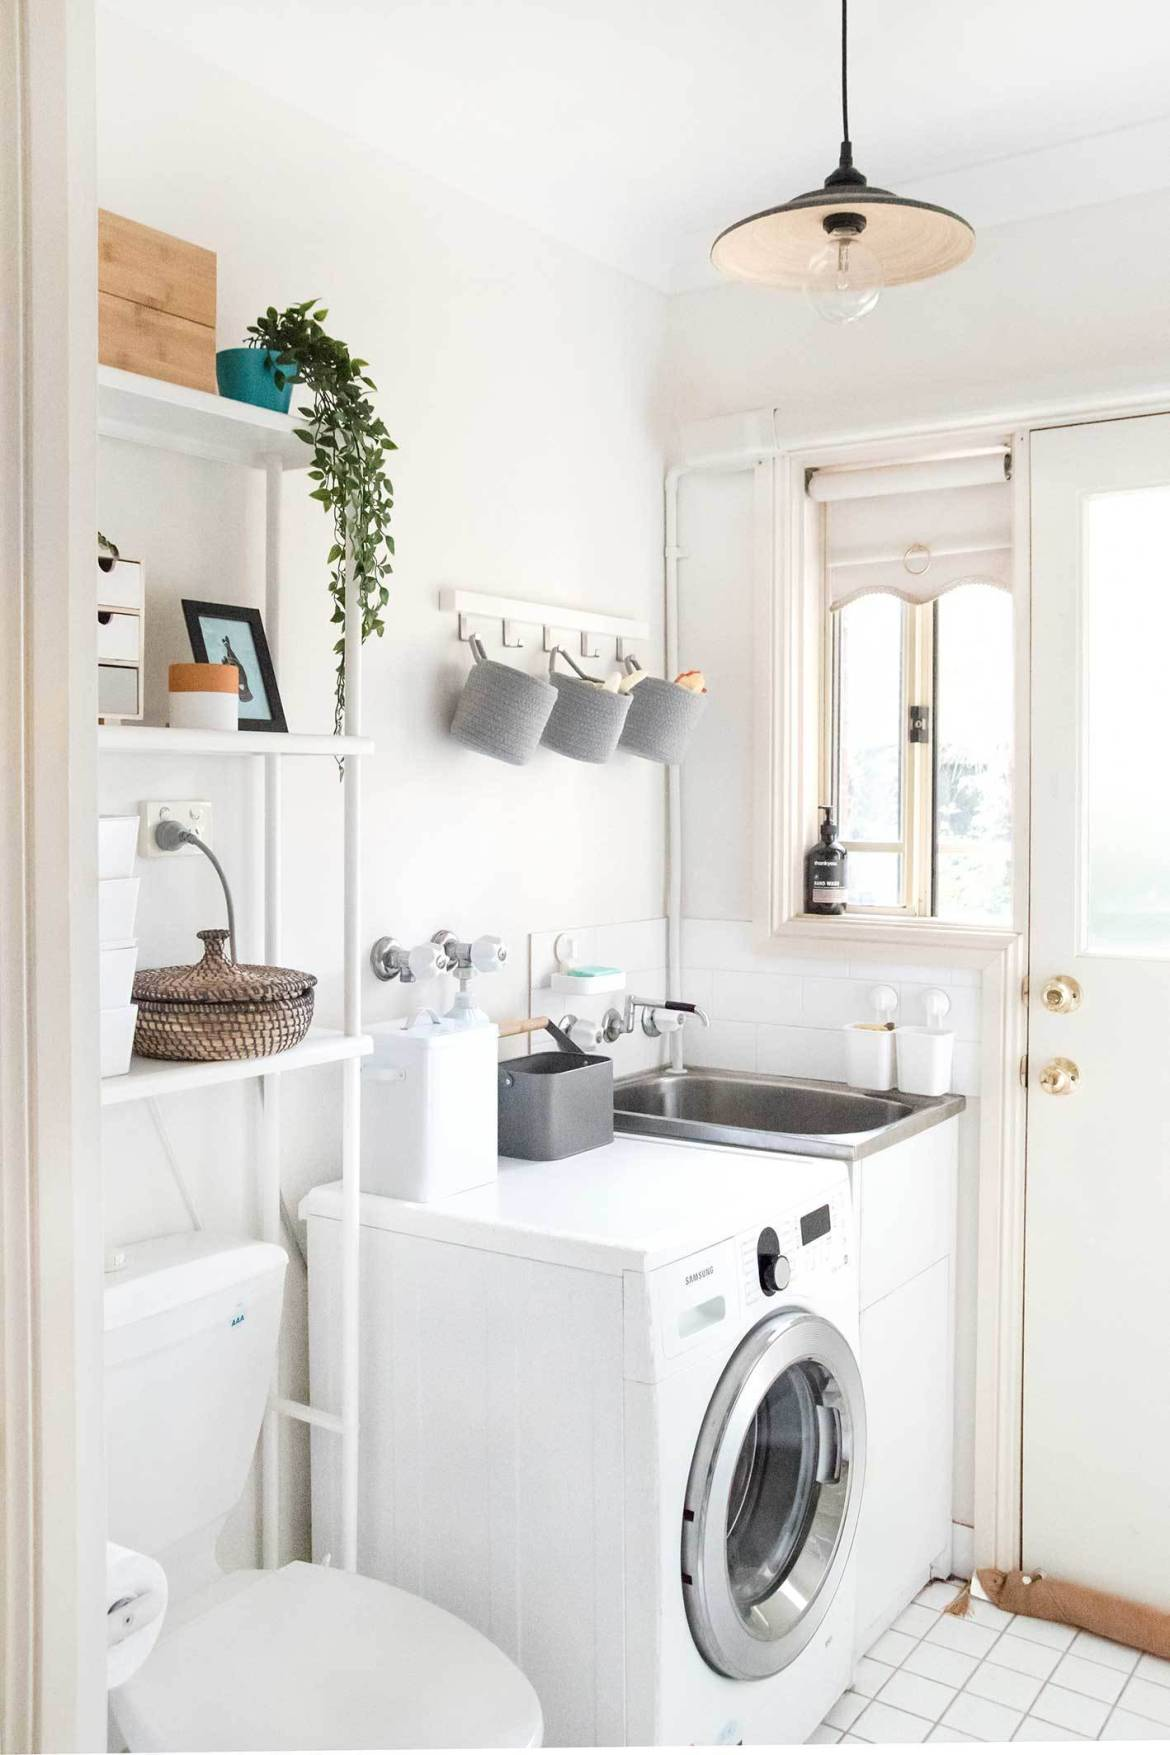 After we applied some easy laundry room storage ideas!